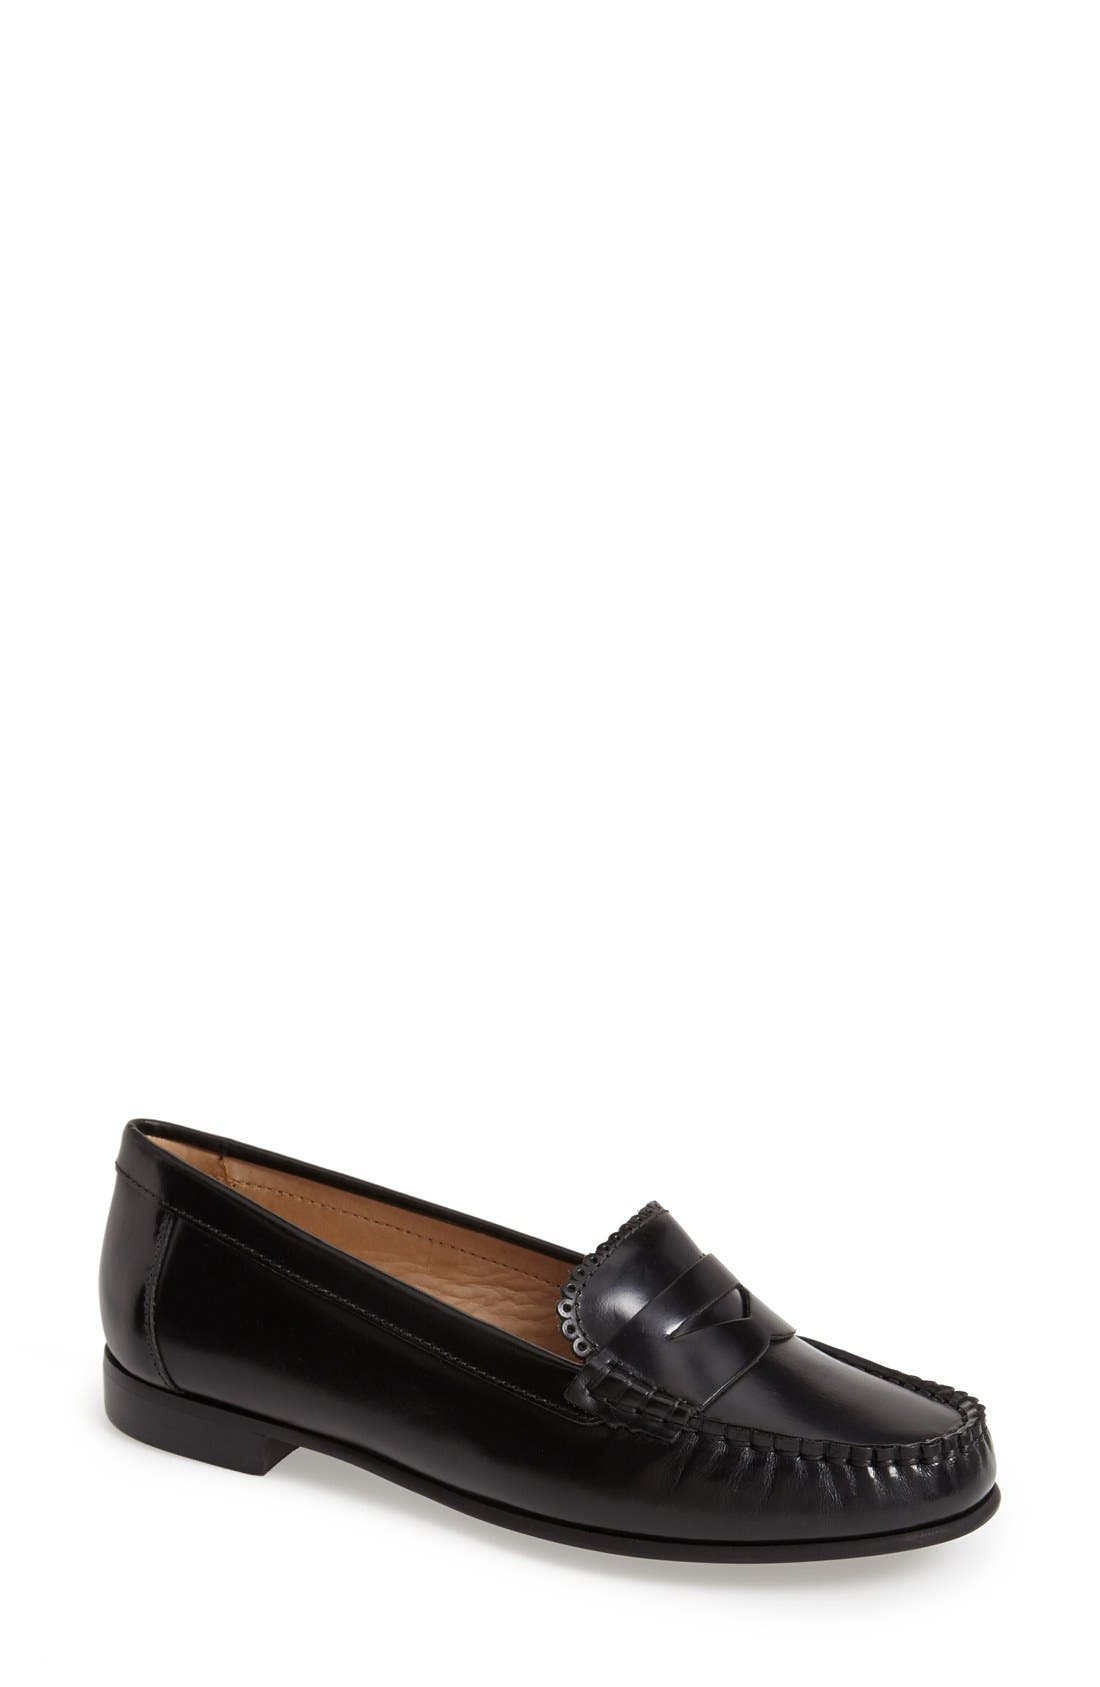 'Quinn' Leather Loafer,                             Main thumbnail 1, color,